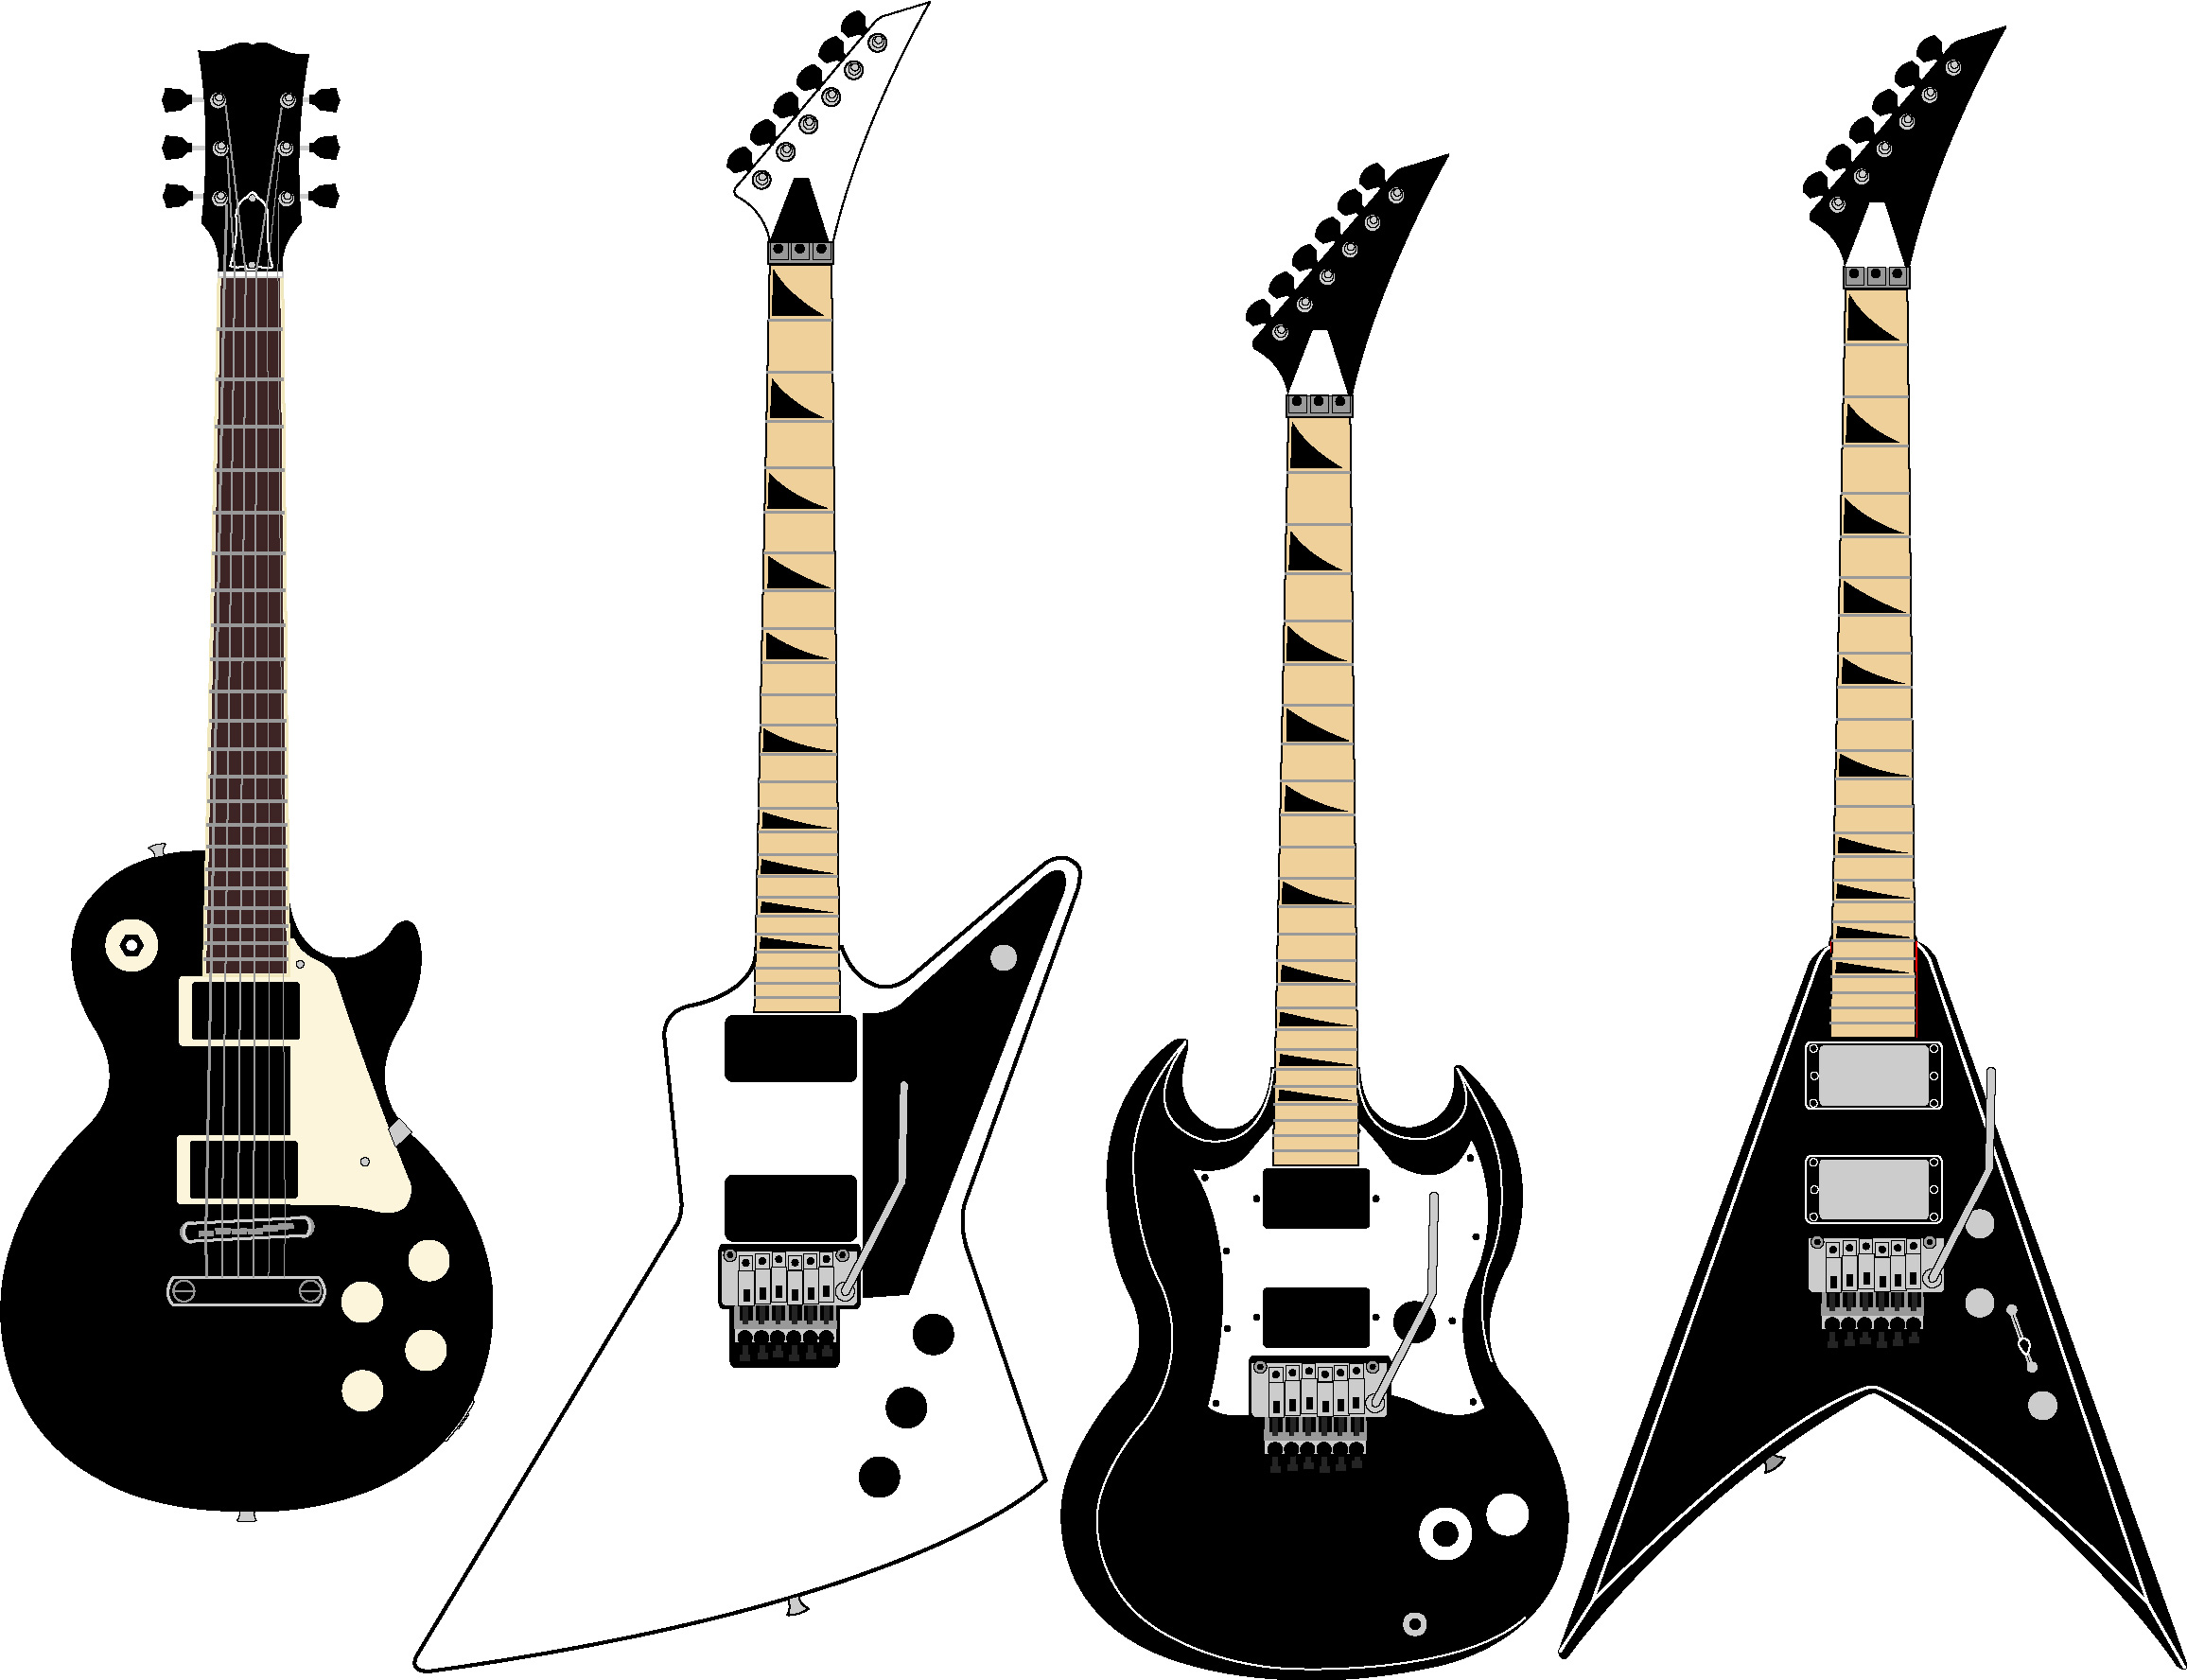 Free Guitar Vector, Download Free Clip Art, Free Clip Art on.